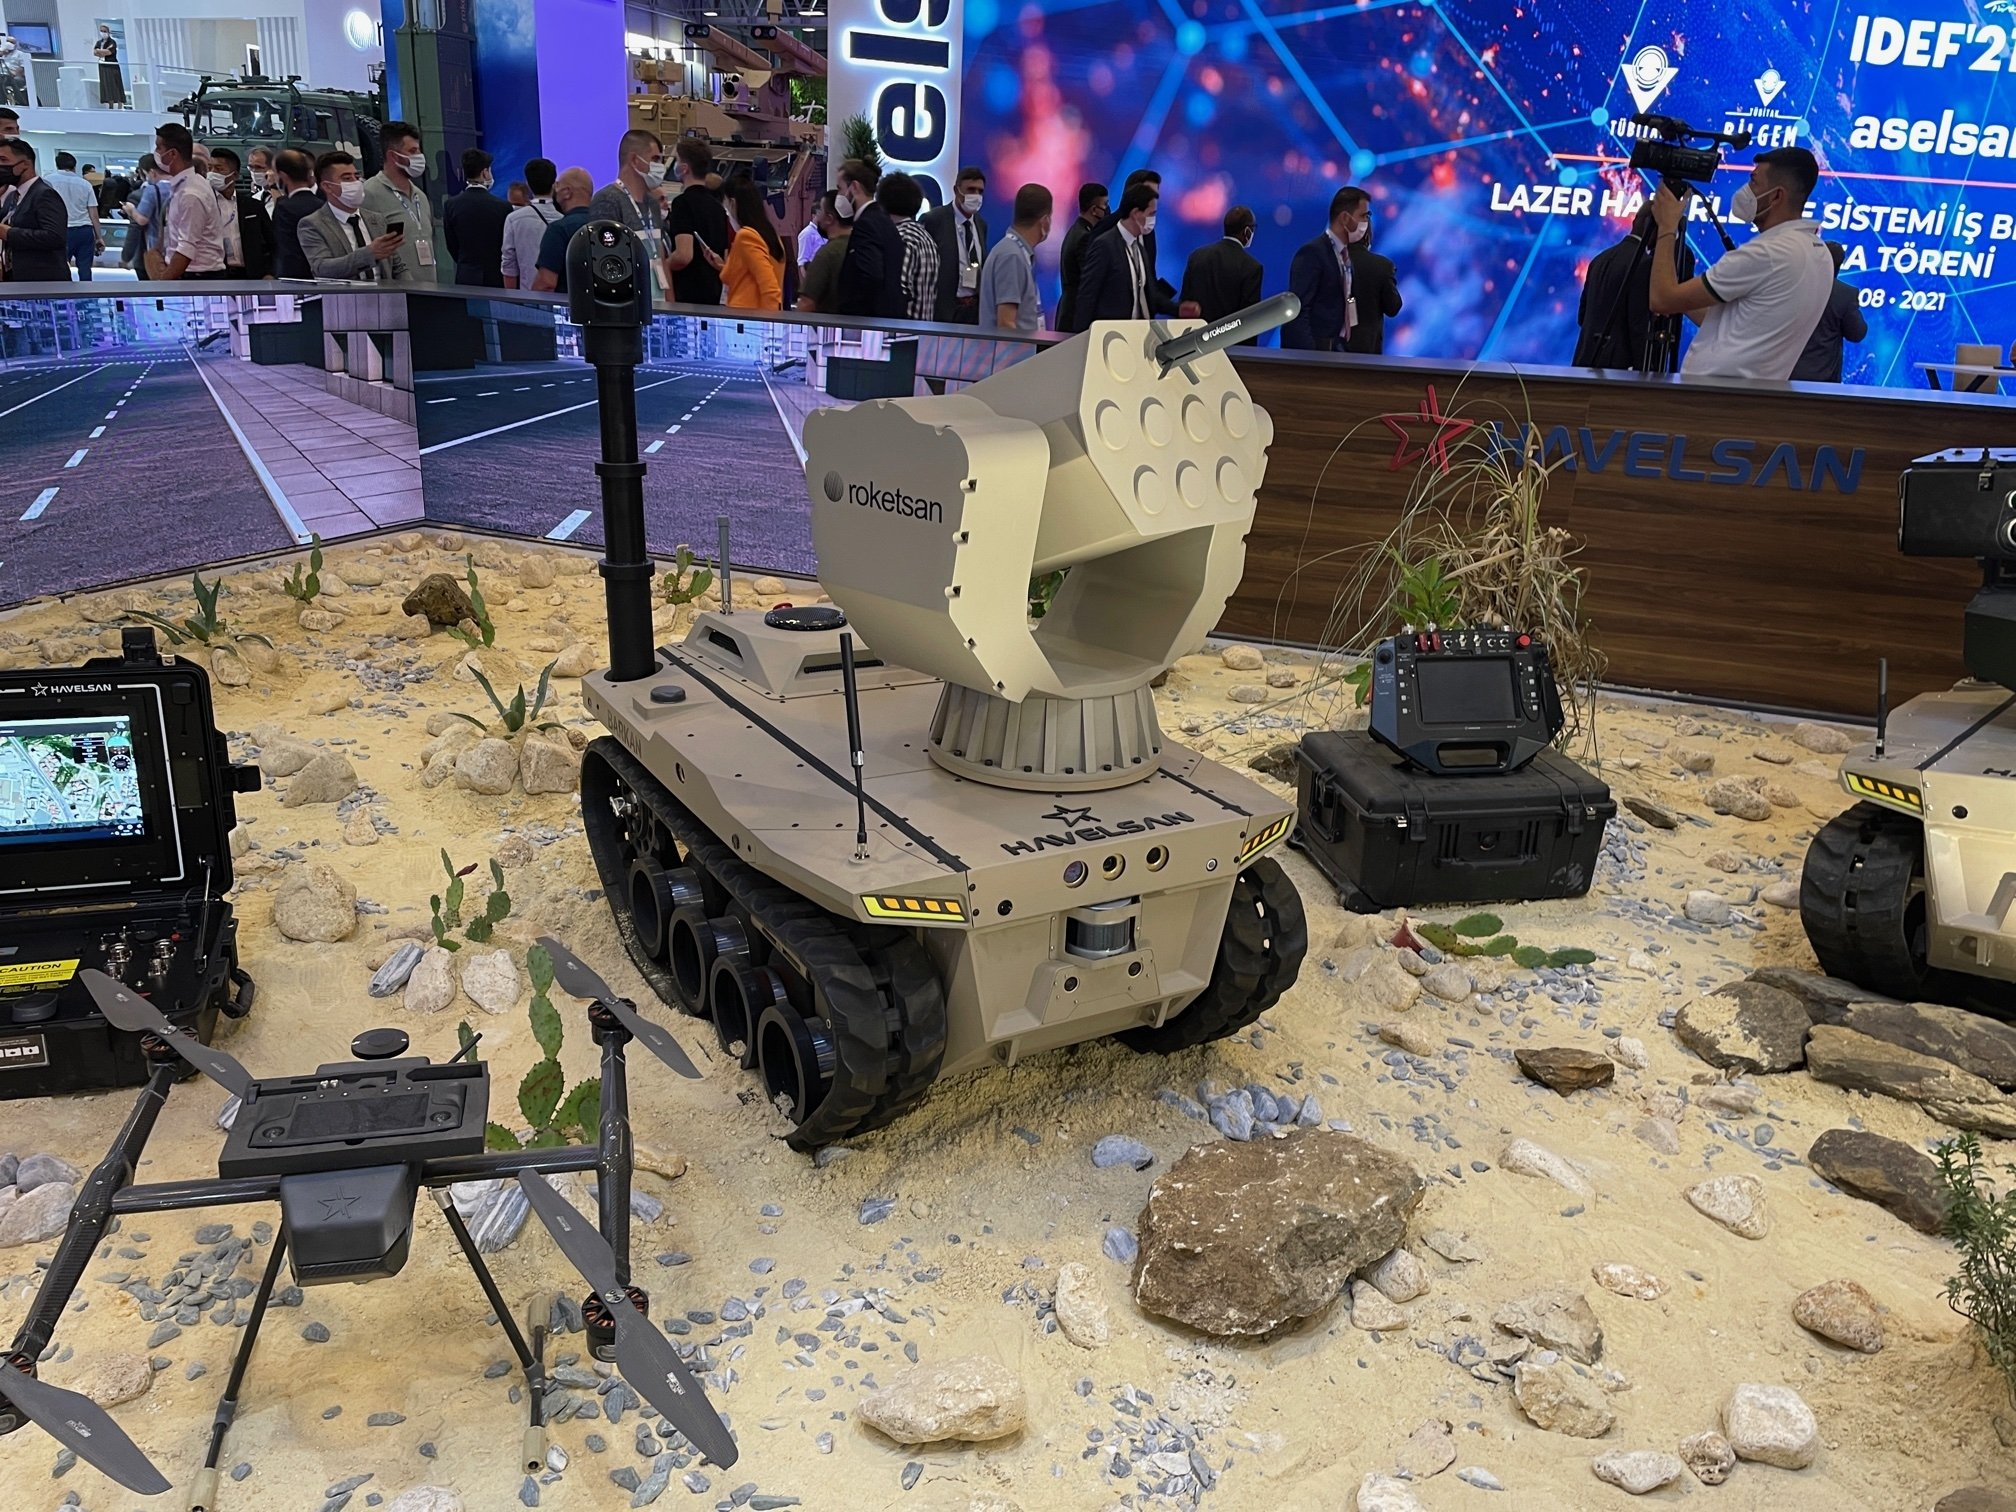 Havelsan's digital troops concept on display at IDEF, Istanbul, Turkey, Aug. 18, 2021. (DHA Photo)